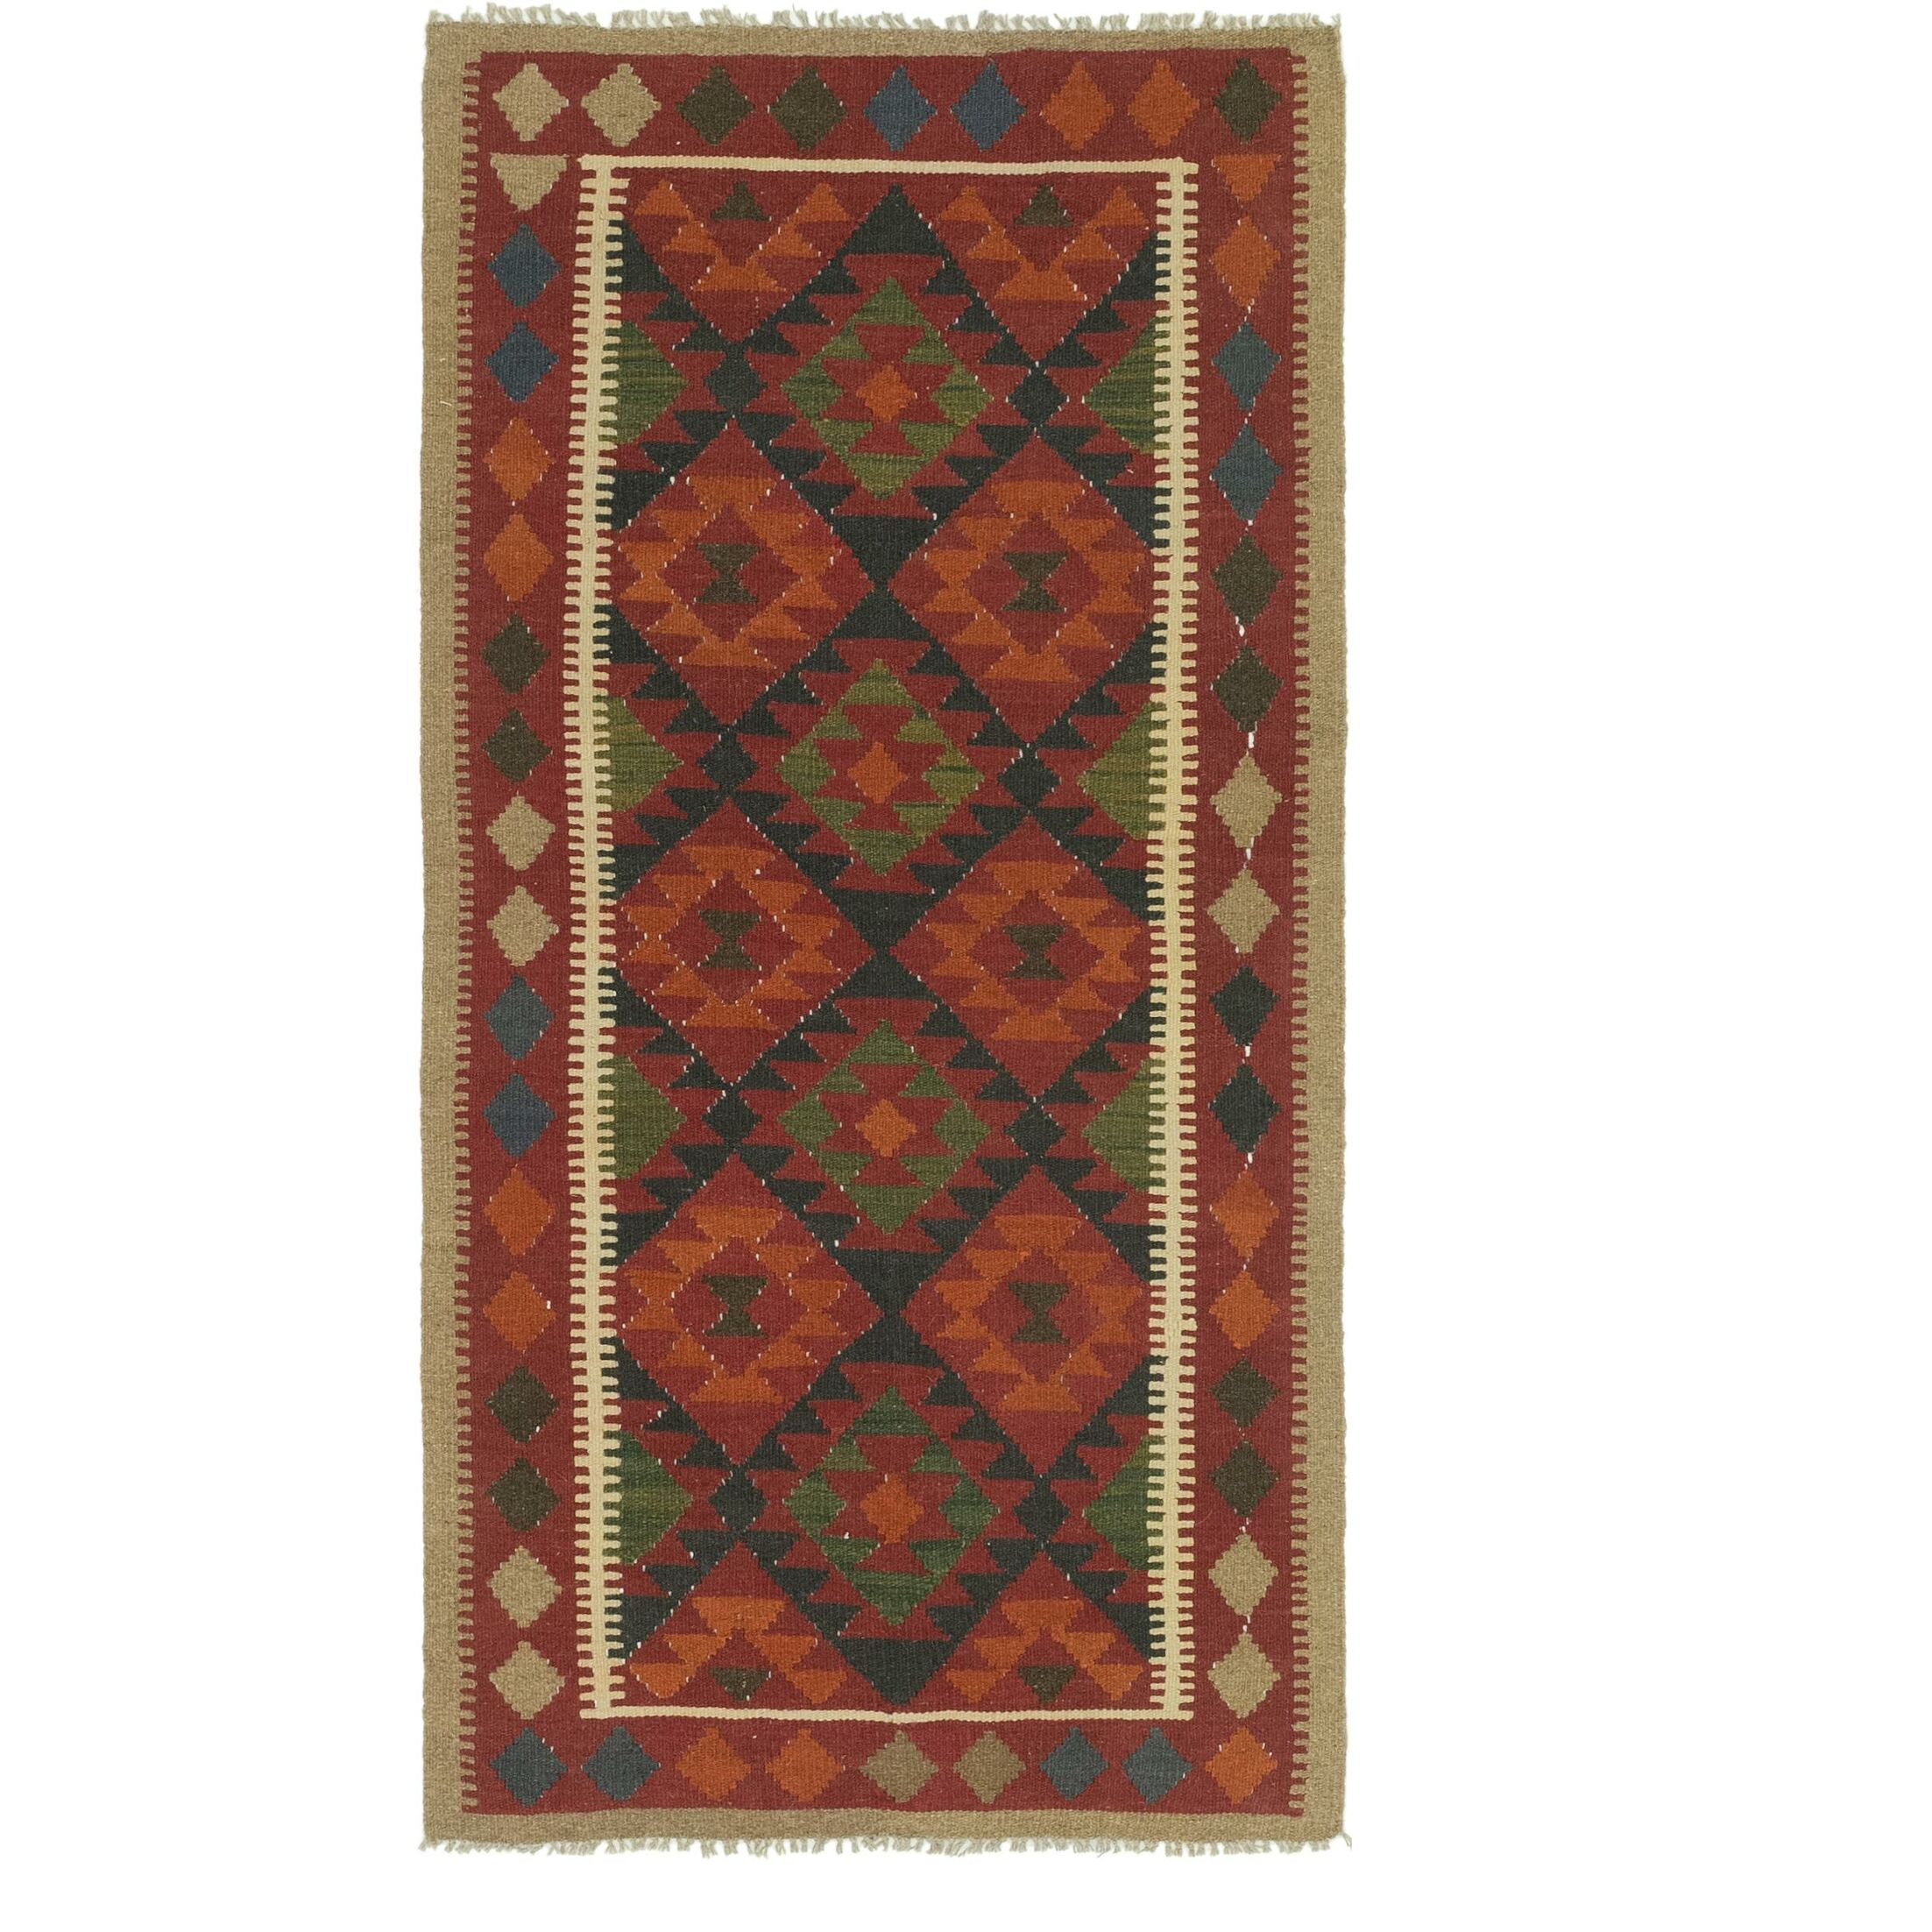 One-of-a-Kind Lorain Hand-Knotted Runner 3'4